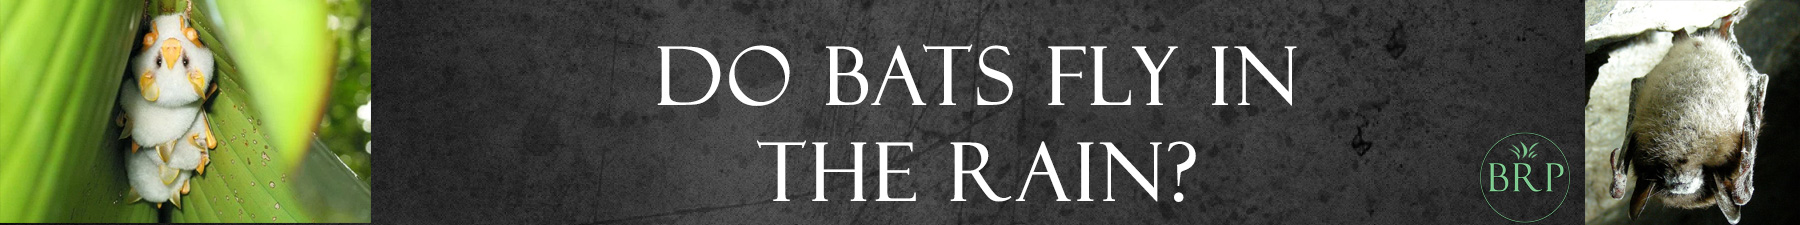 can bats fly in the rain header image at bat removal pro